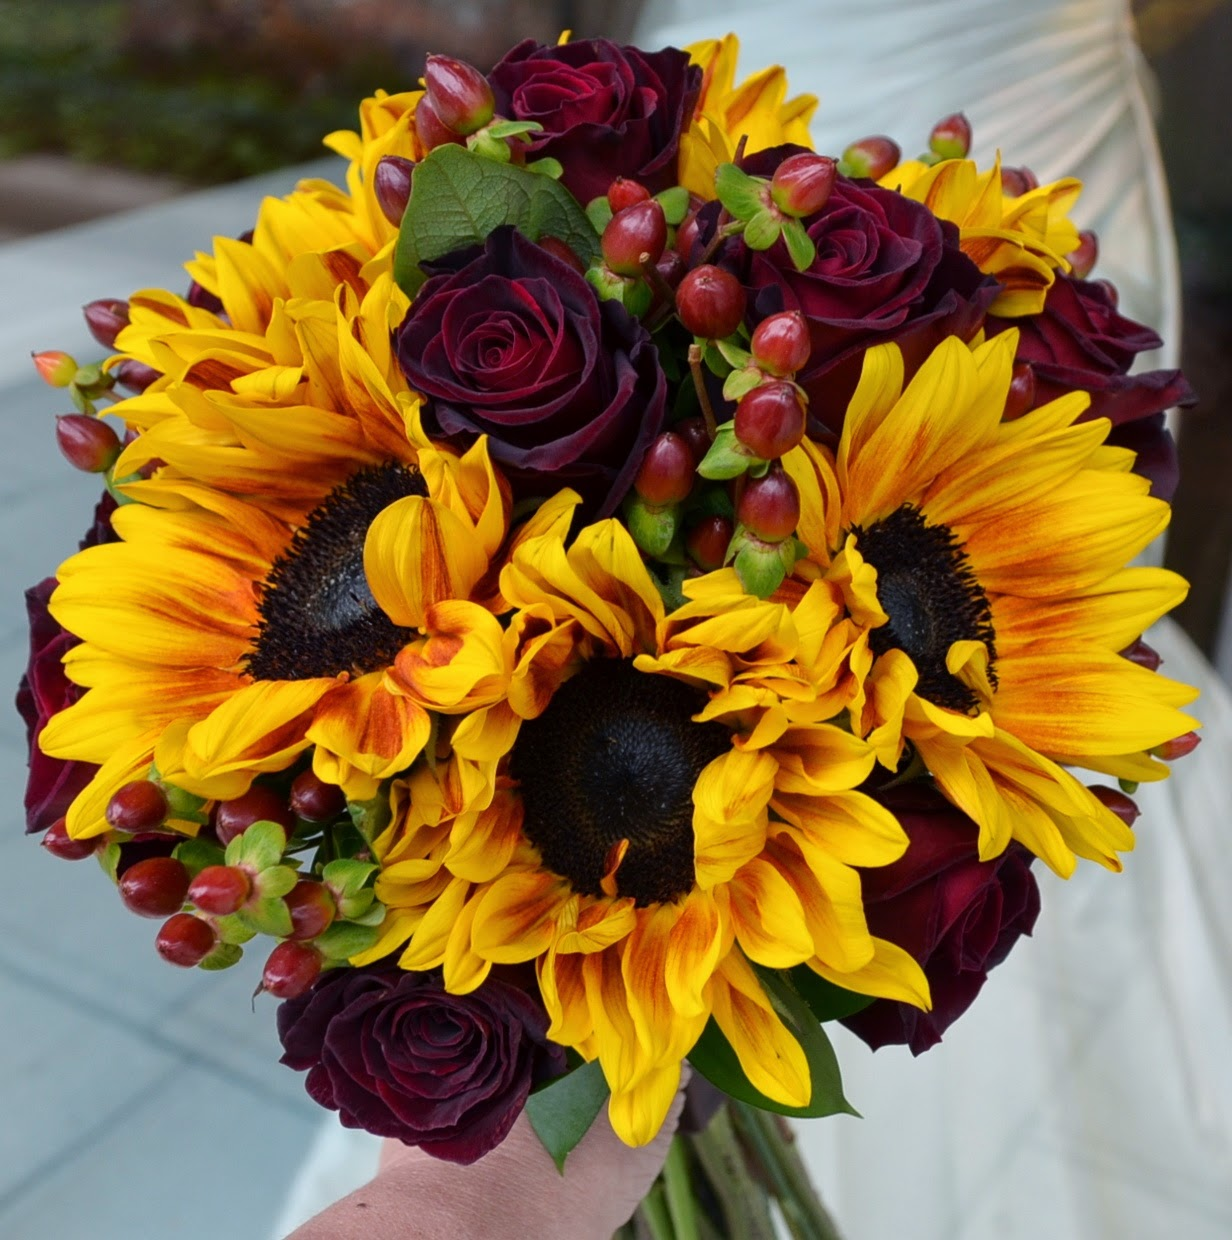 Pinterest Fall Wedding Flowers: Fall Sunflowers And Rose Wedding Bouquets